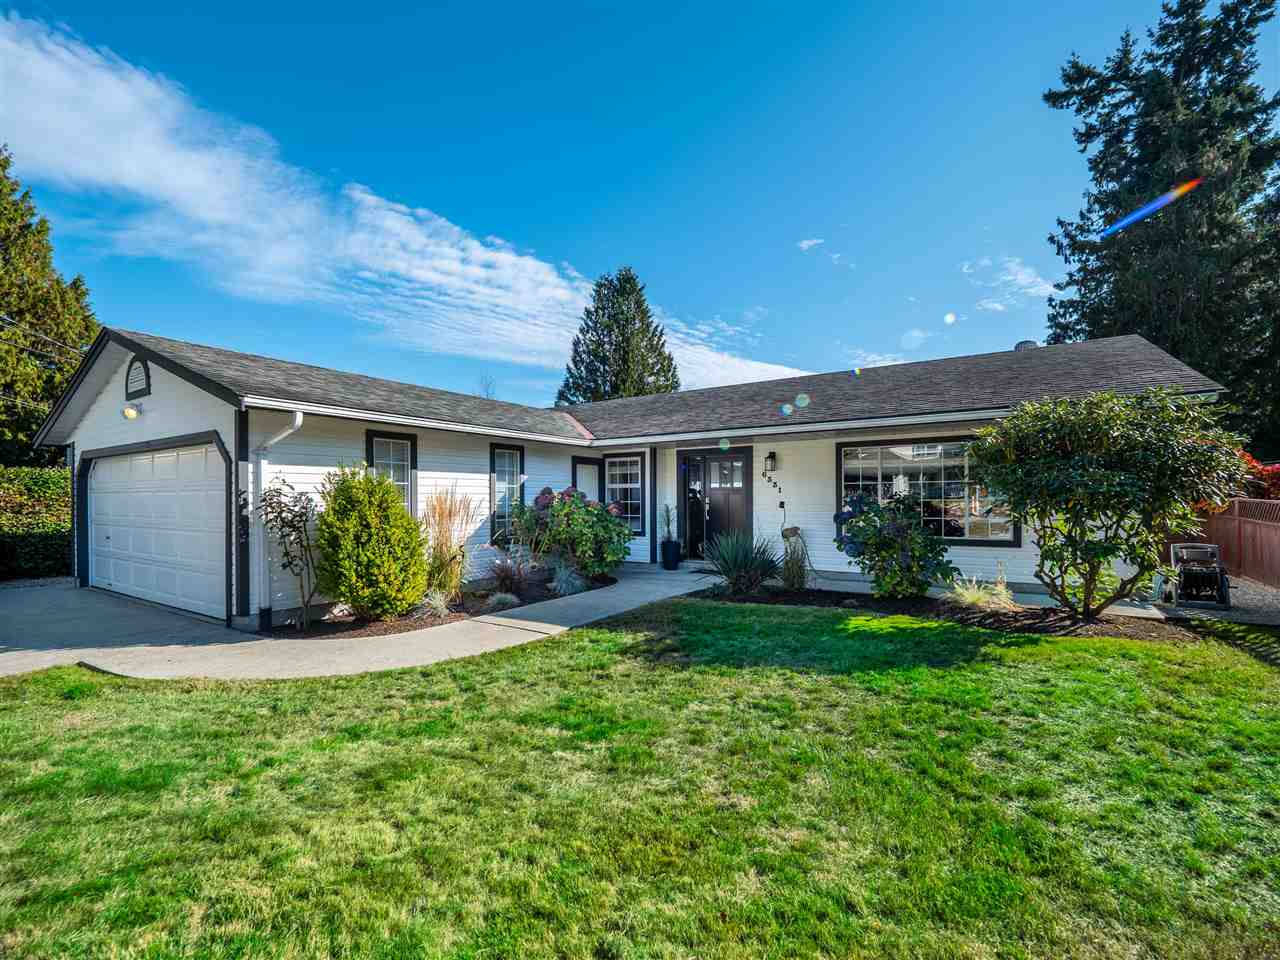 6331 PICADILLY PLACE - MLS® # R2410576